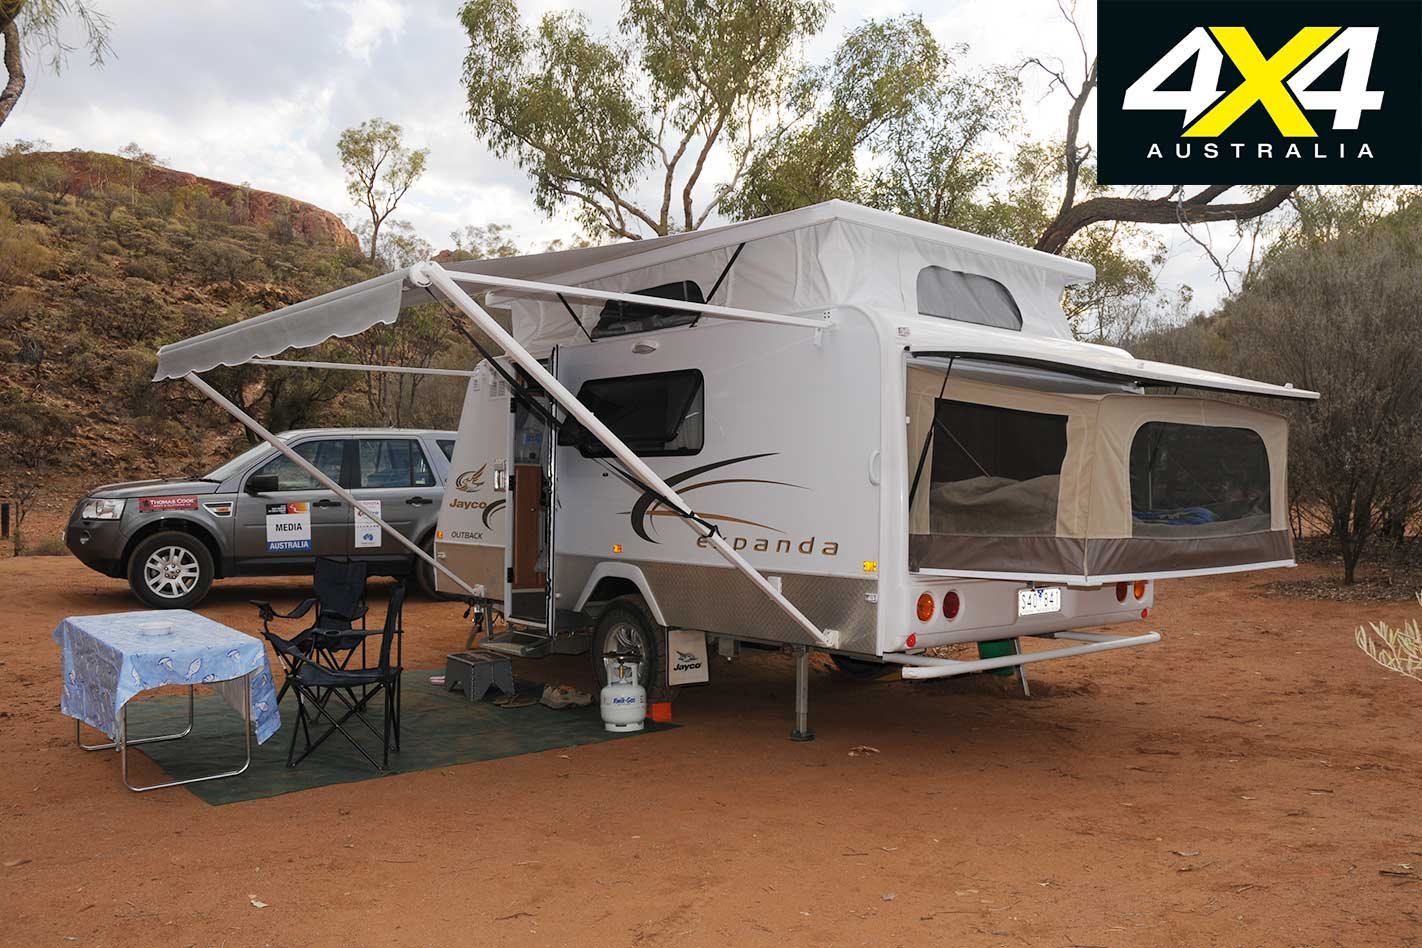 d4a29d88a8 The verdict  if you are planning some serious outback slogging with a  full-size